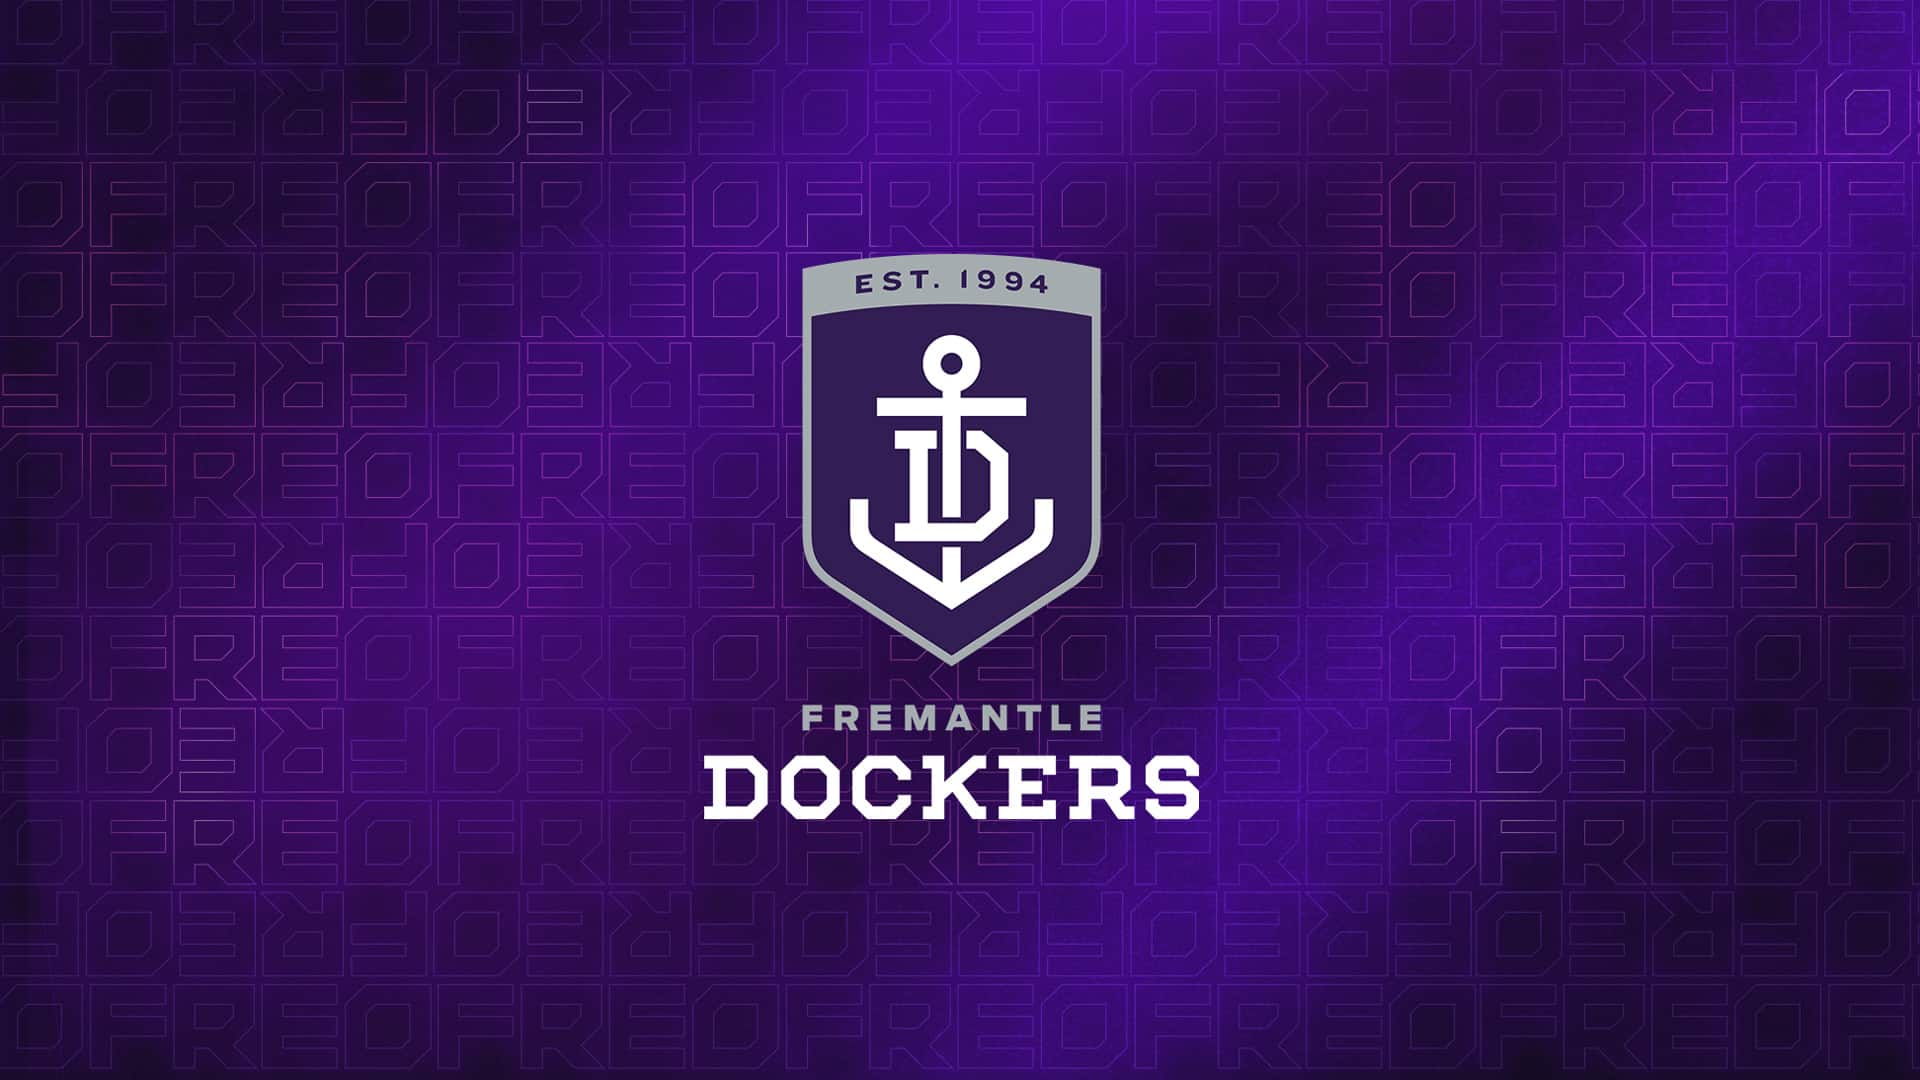 Unduh 96 Wallpaper Fremantle Wa HD Terbaik